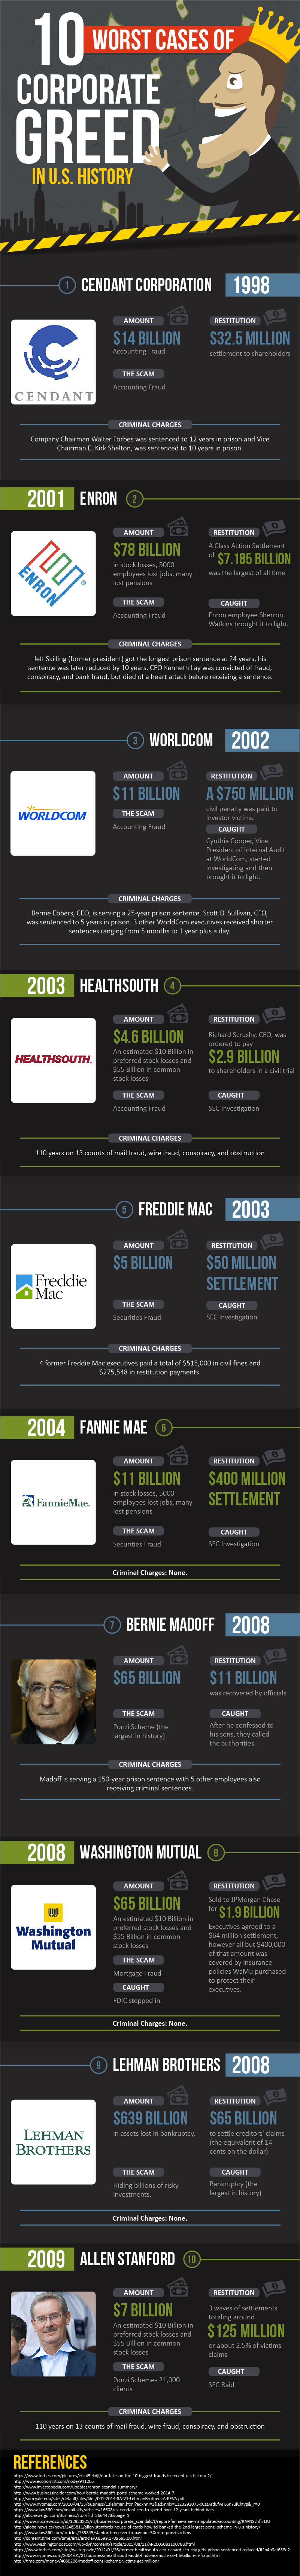 10-worst-cases-of-corporate-greed-in-us-history_infographic